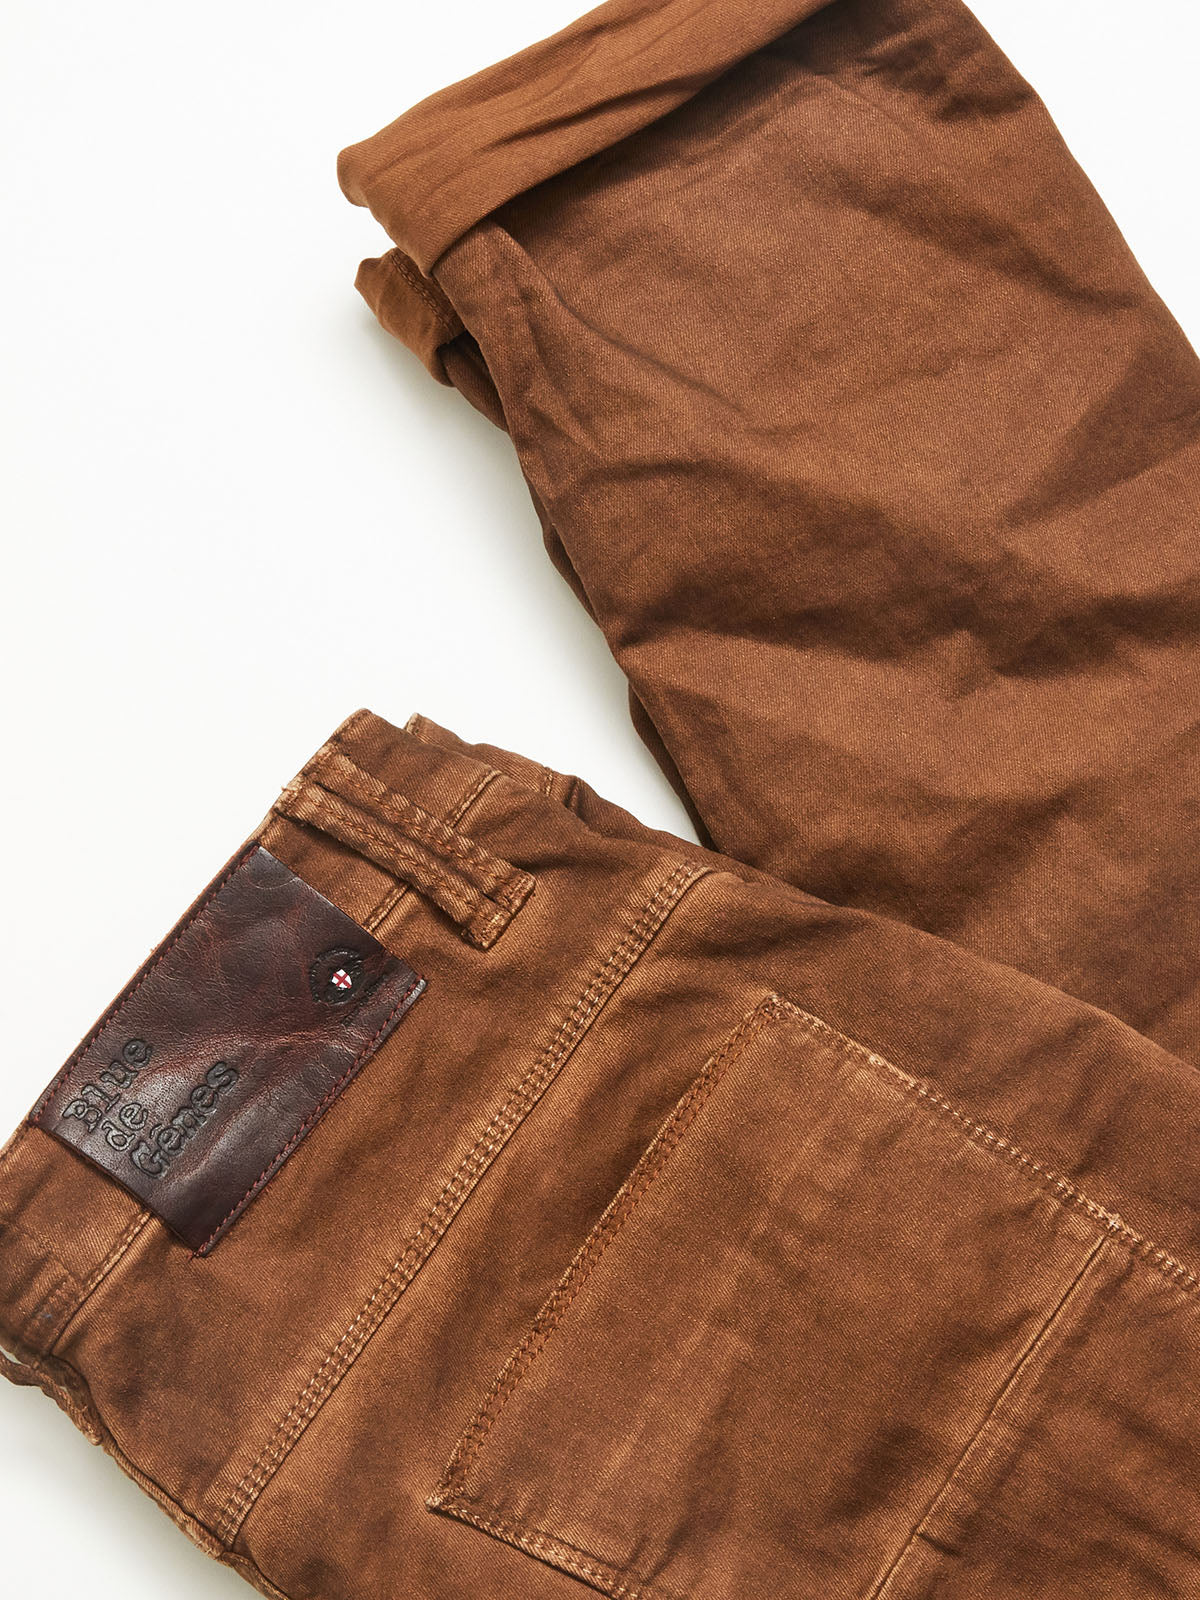 Paulo Pavia Super Oil Trousers - Brown Spice